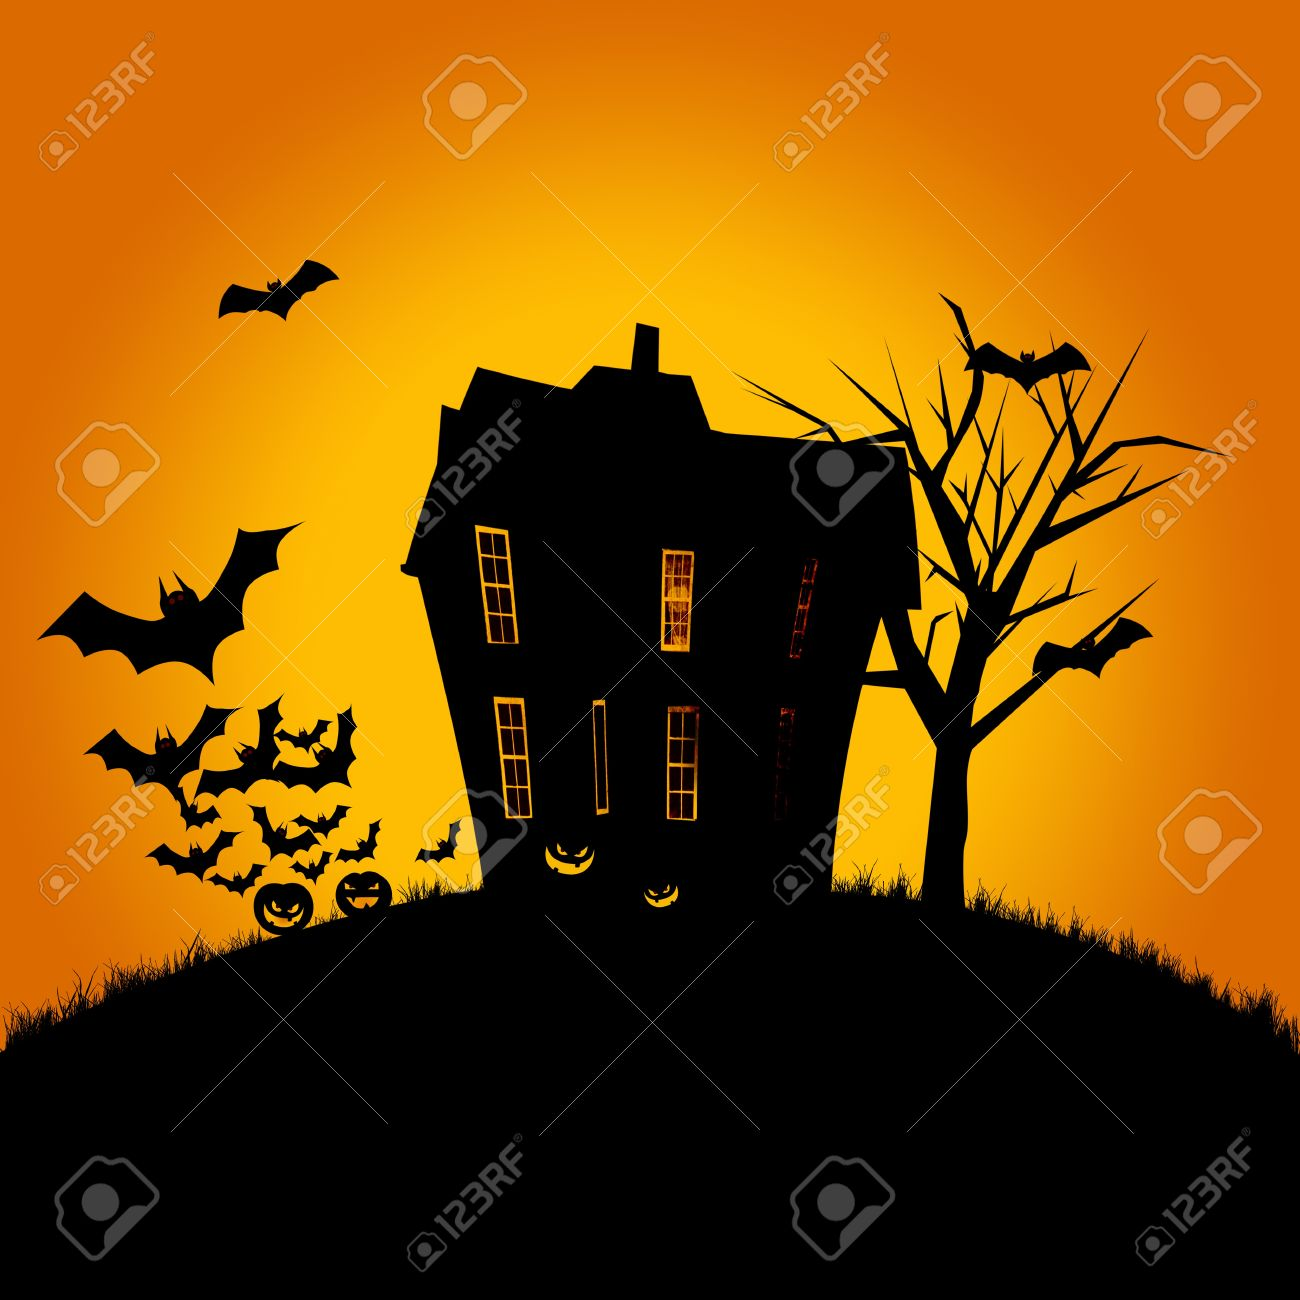 Halloween poster of a haunted house, pumpkins and flying bats. Room for text. Stock Photo - 10679421